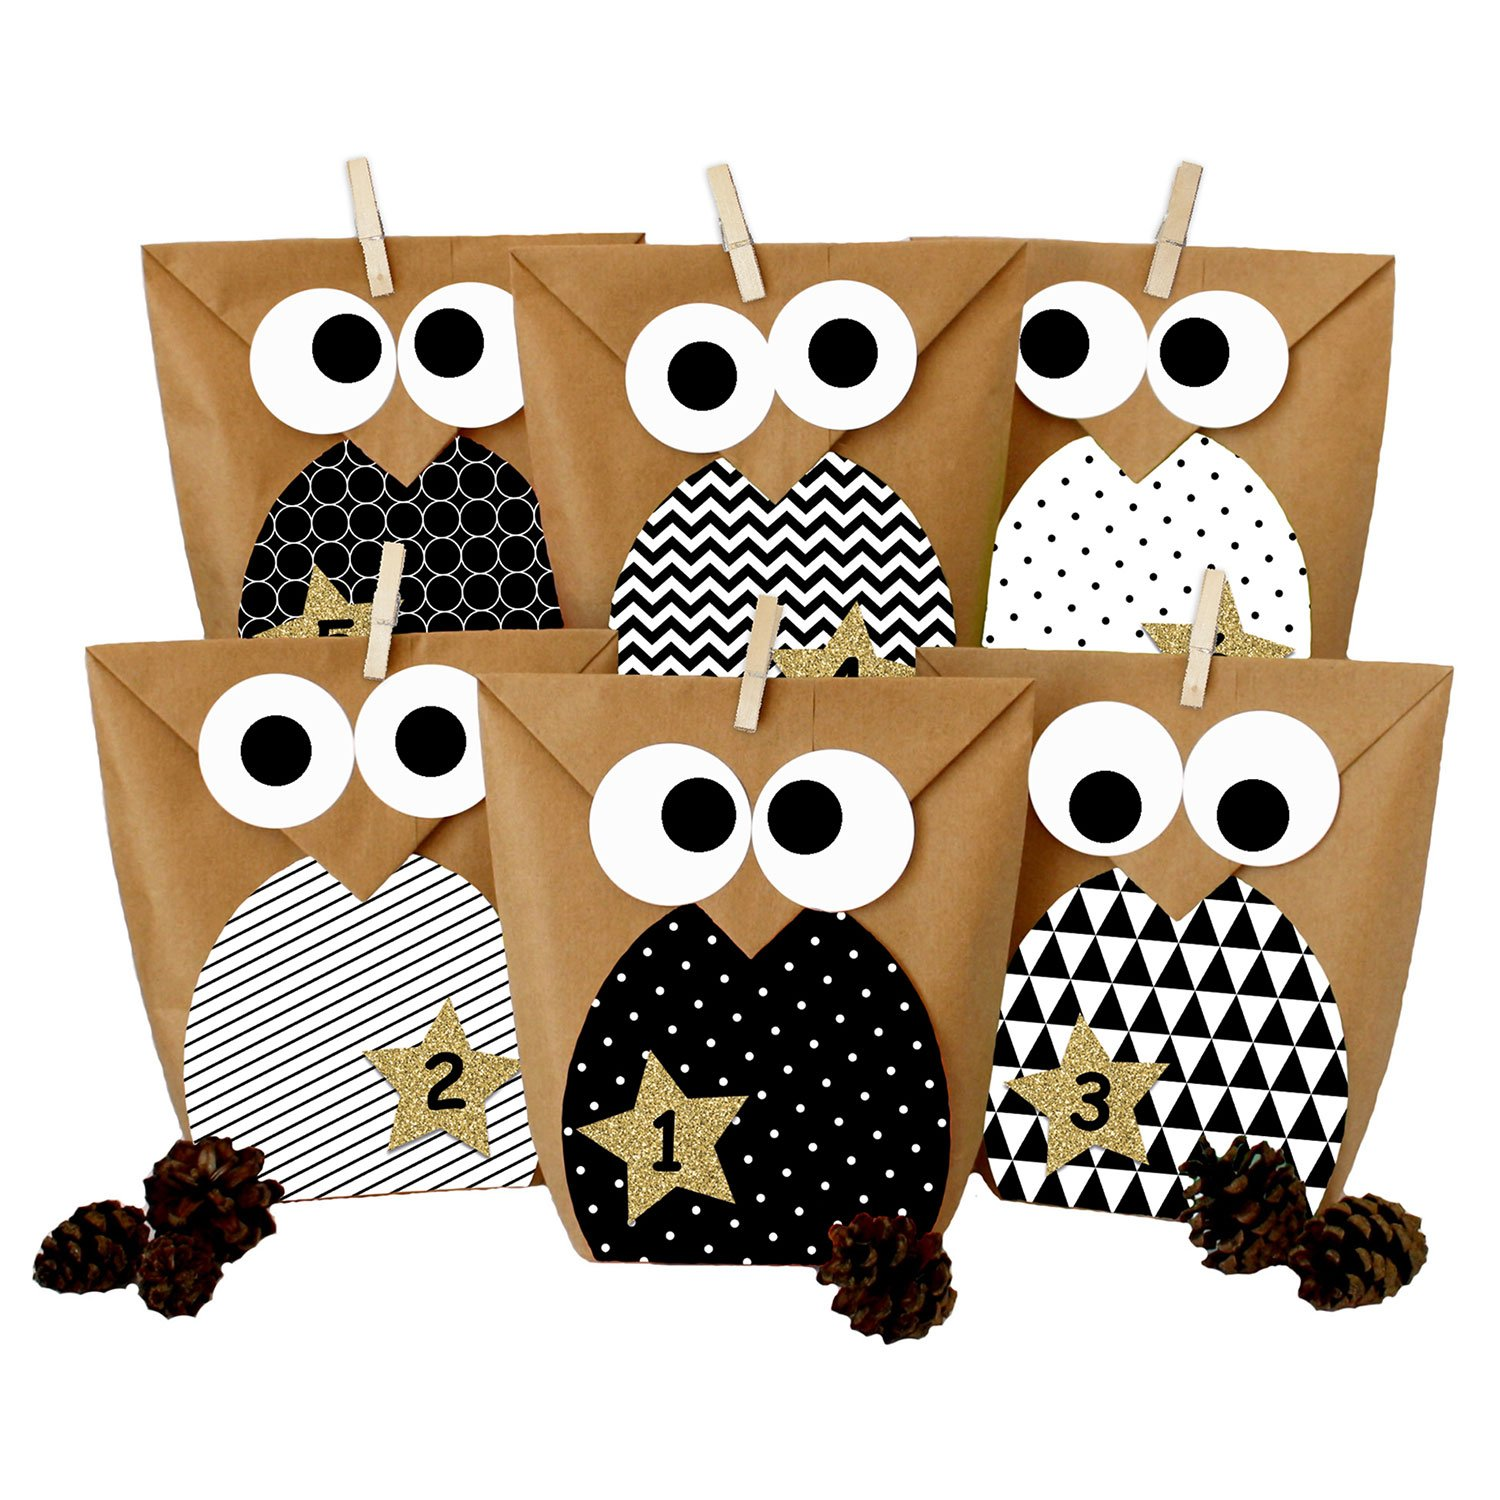 Advent Calendar for Making and Filling 400-030-009 Christmas Owls red with Additional Stickers Papierdrachen DIY Advent Calendar